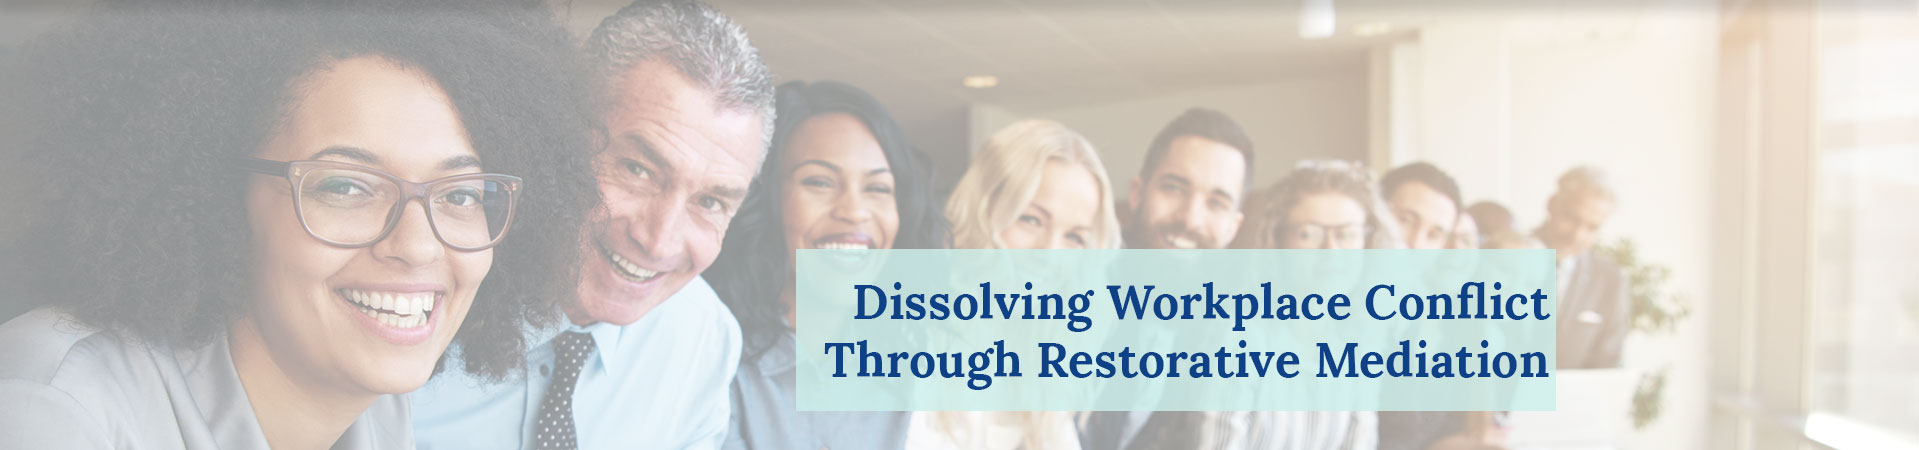 Dissolving Workplace Conflict Through Restorative Mediation